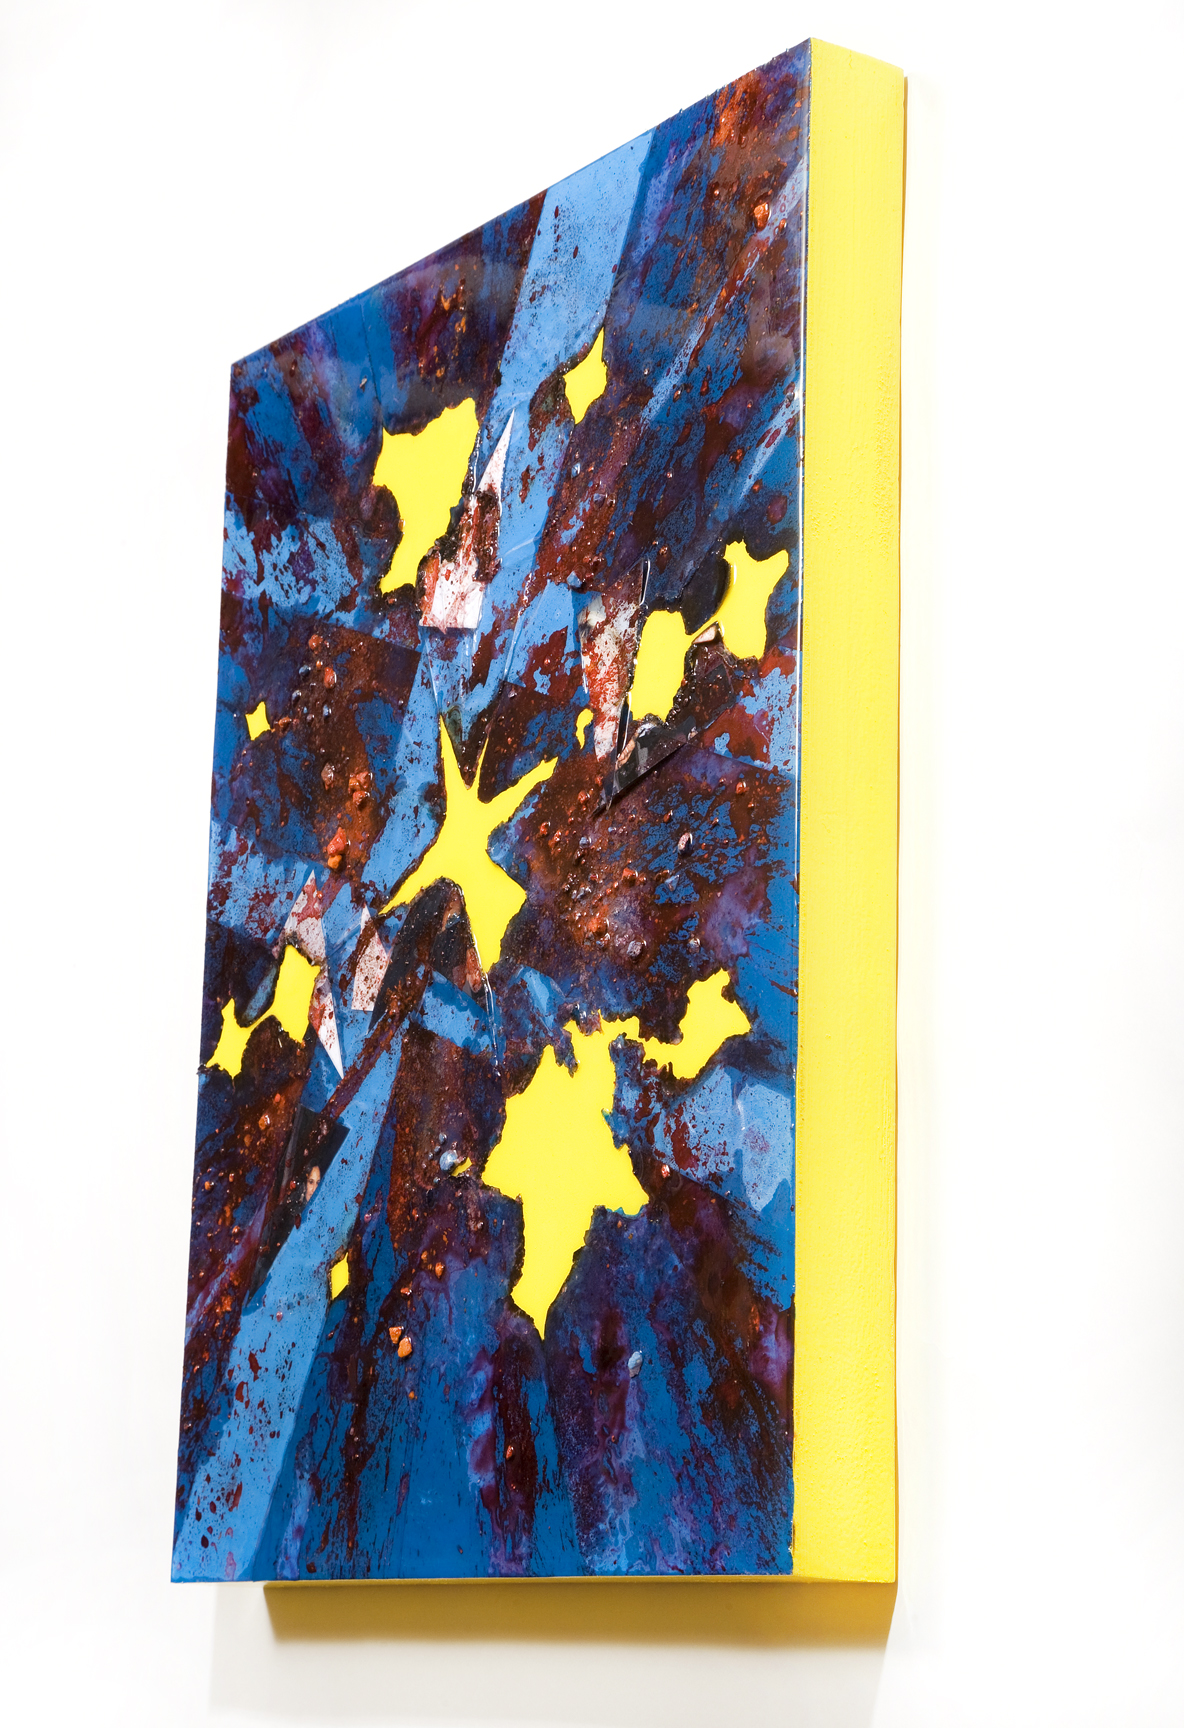 """SERIE I, Untitled SIDE VIEW (blue/yellow), photographs, photo background paper, chalk, spray paint, packing tape, powder drink, glue, epoxy resin on wood panel, 16""""x20""""x2"""", 2019"""